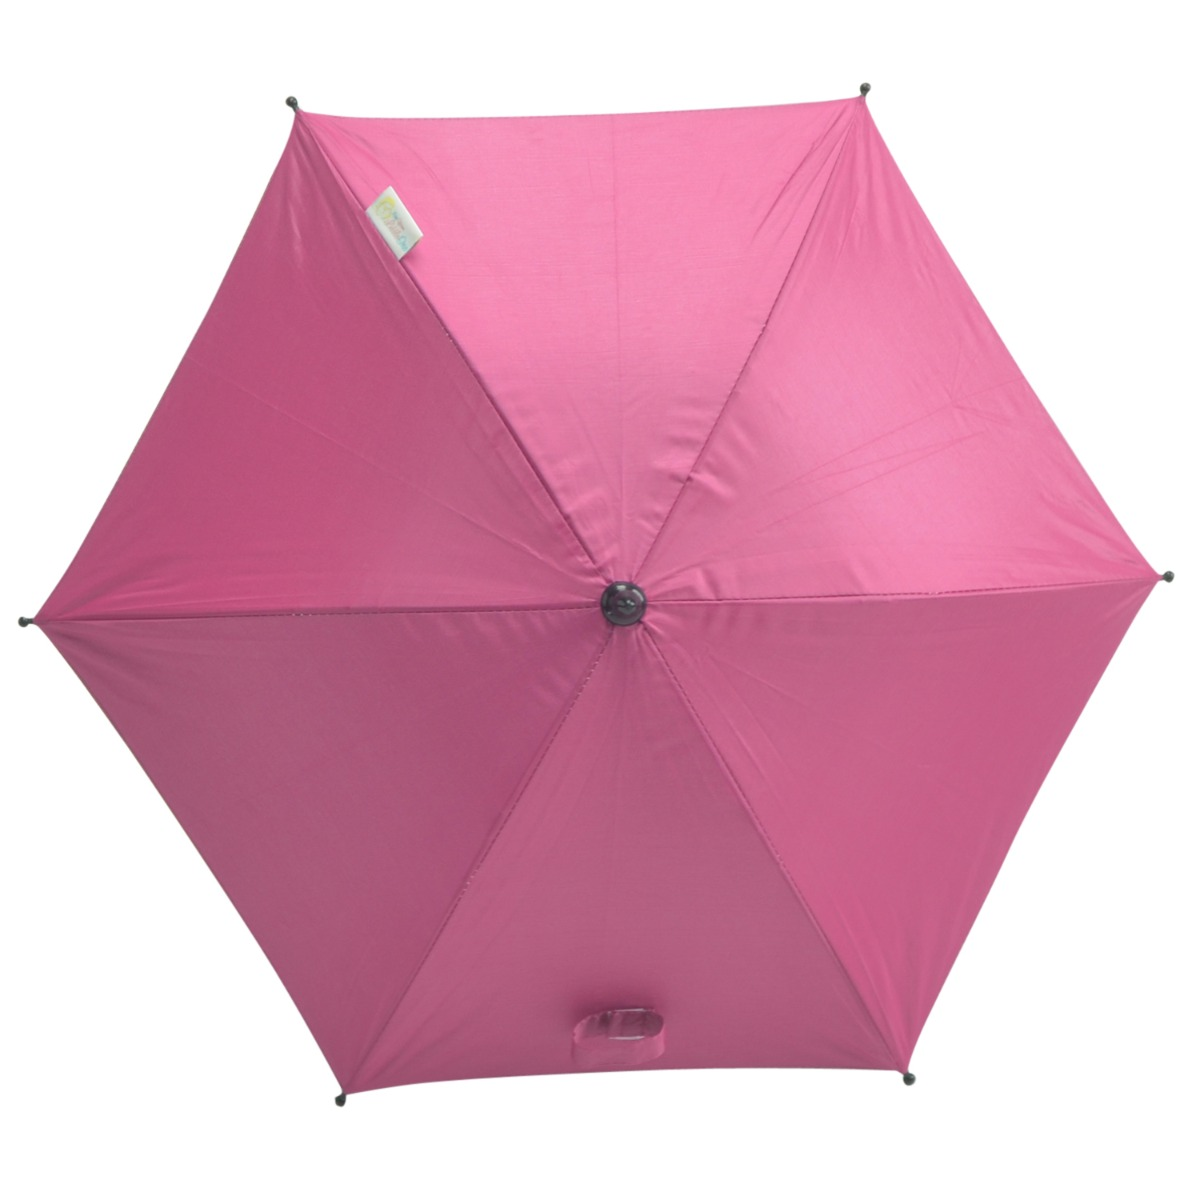 Baby-Parasol-Universal-Sun-Umbrella-Shade-Maker-Canopy-For-Pushchair-Pram-Buggy thumbnail 43